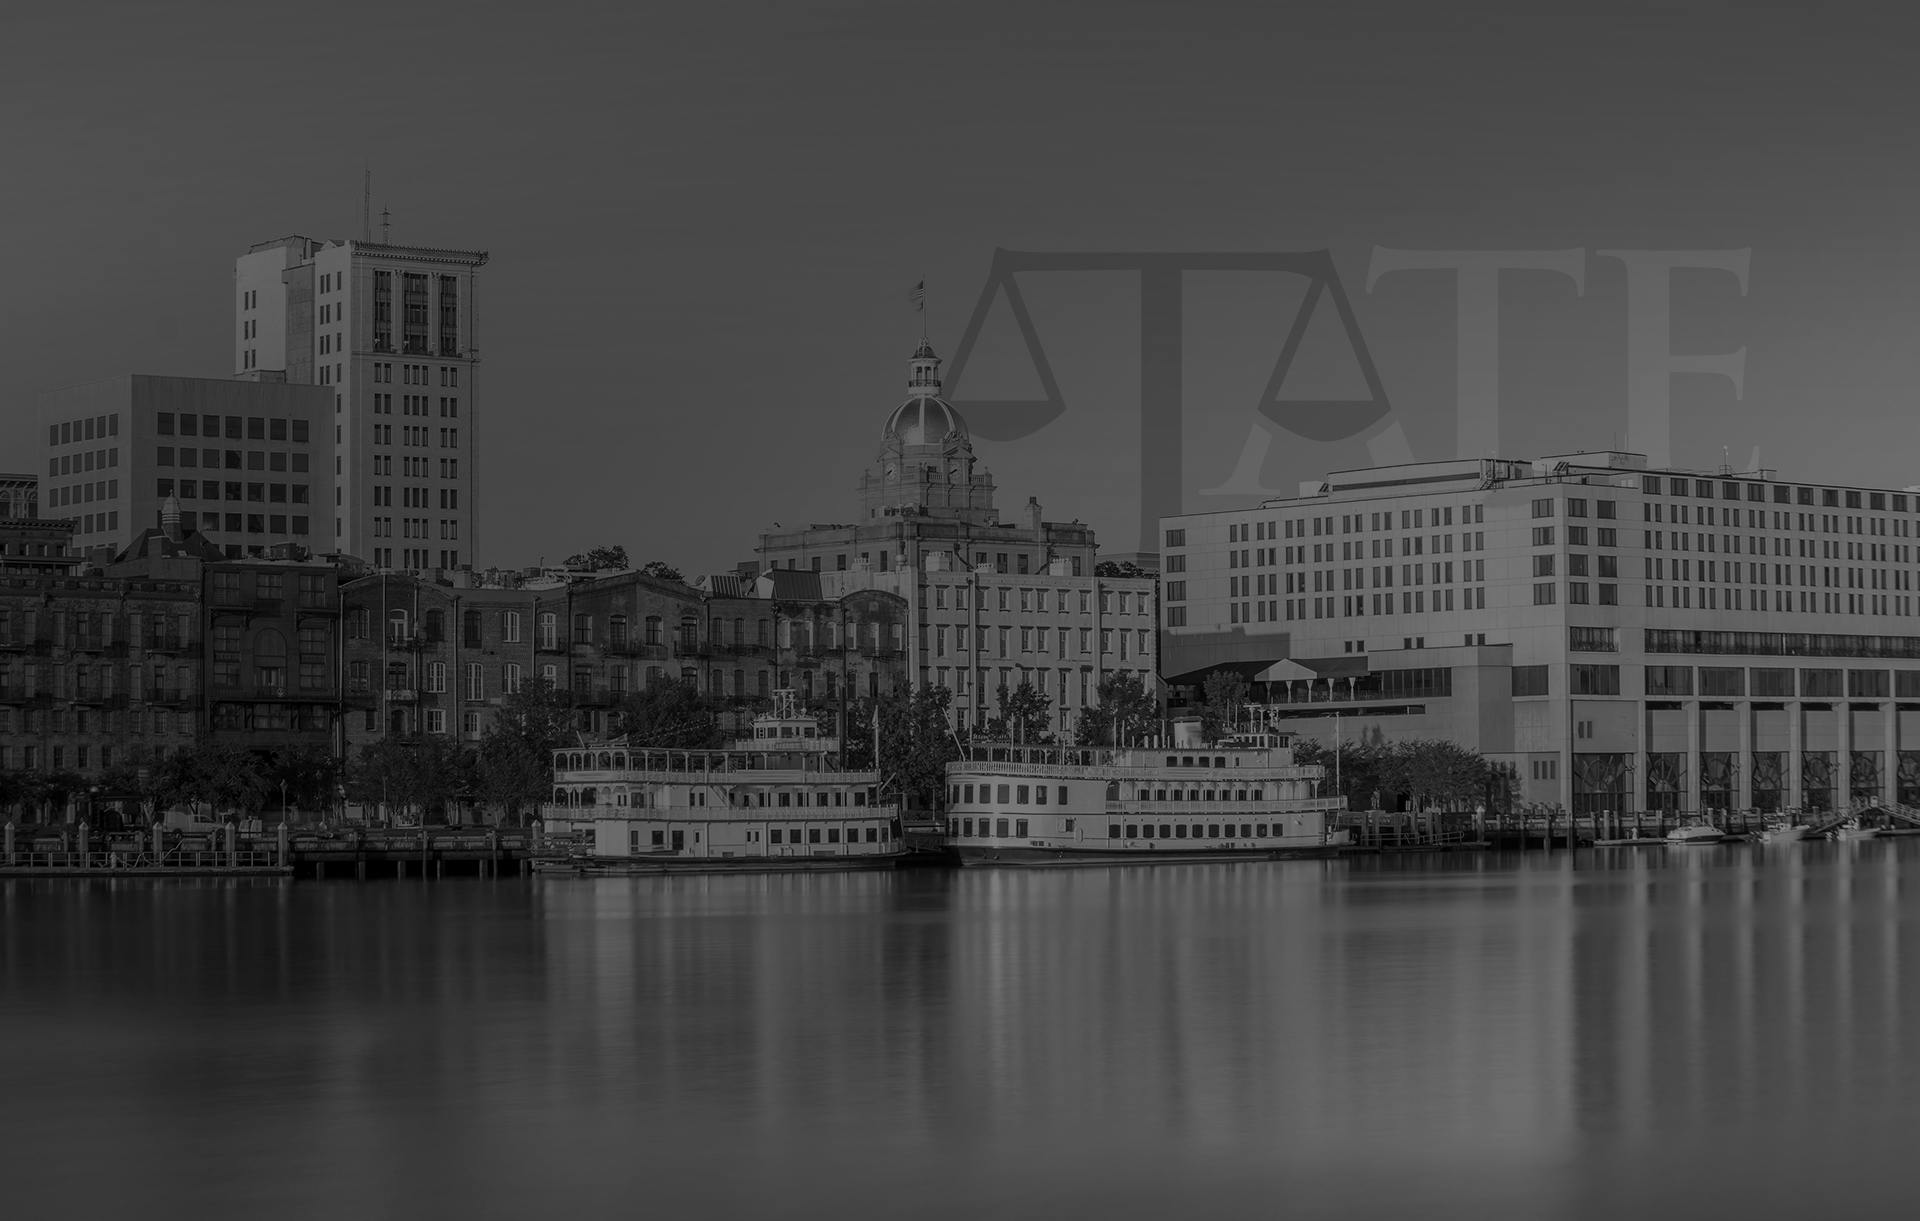 Savannah Injury Lawyers | Tate Law Group, LLC